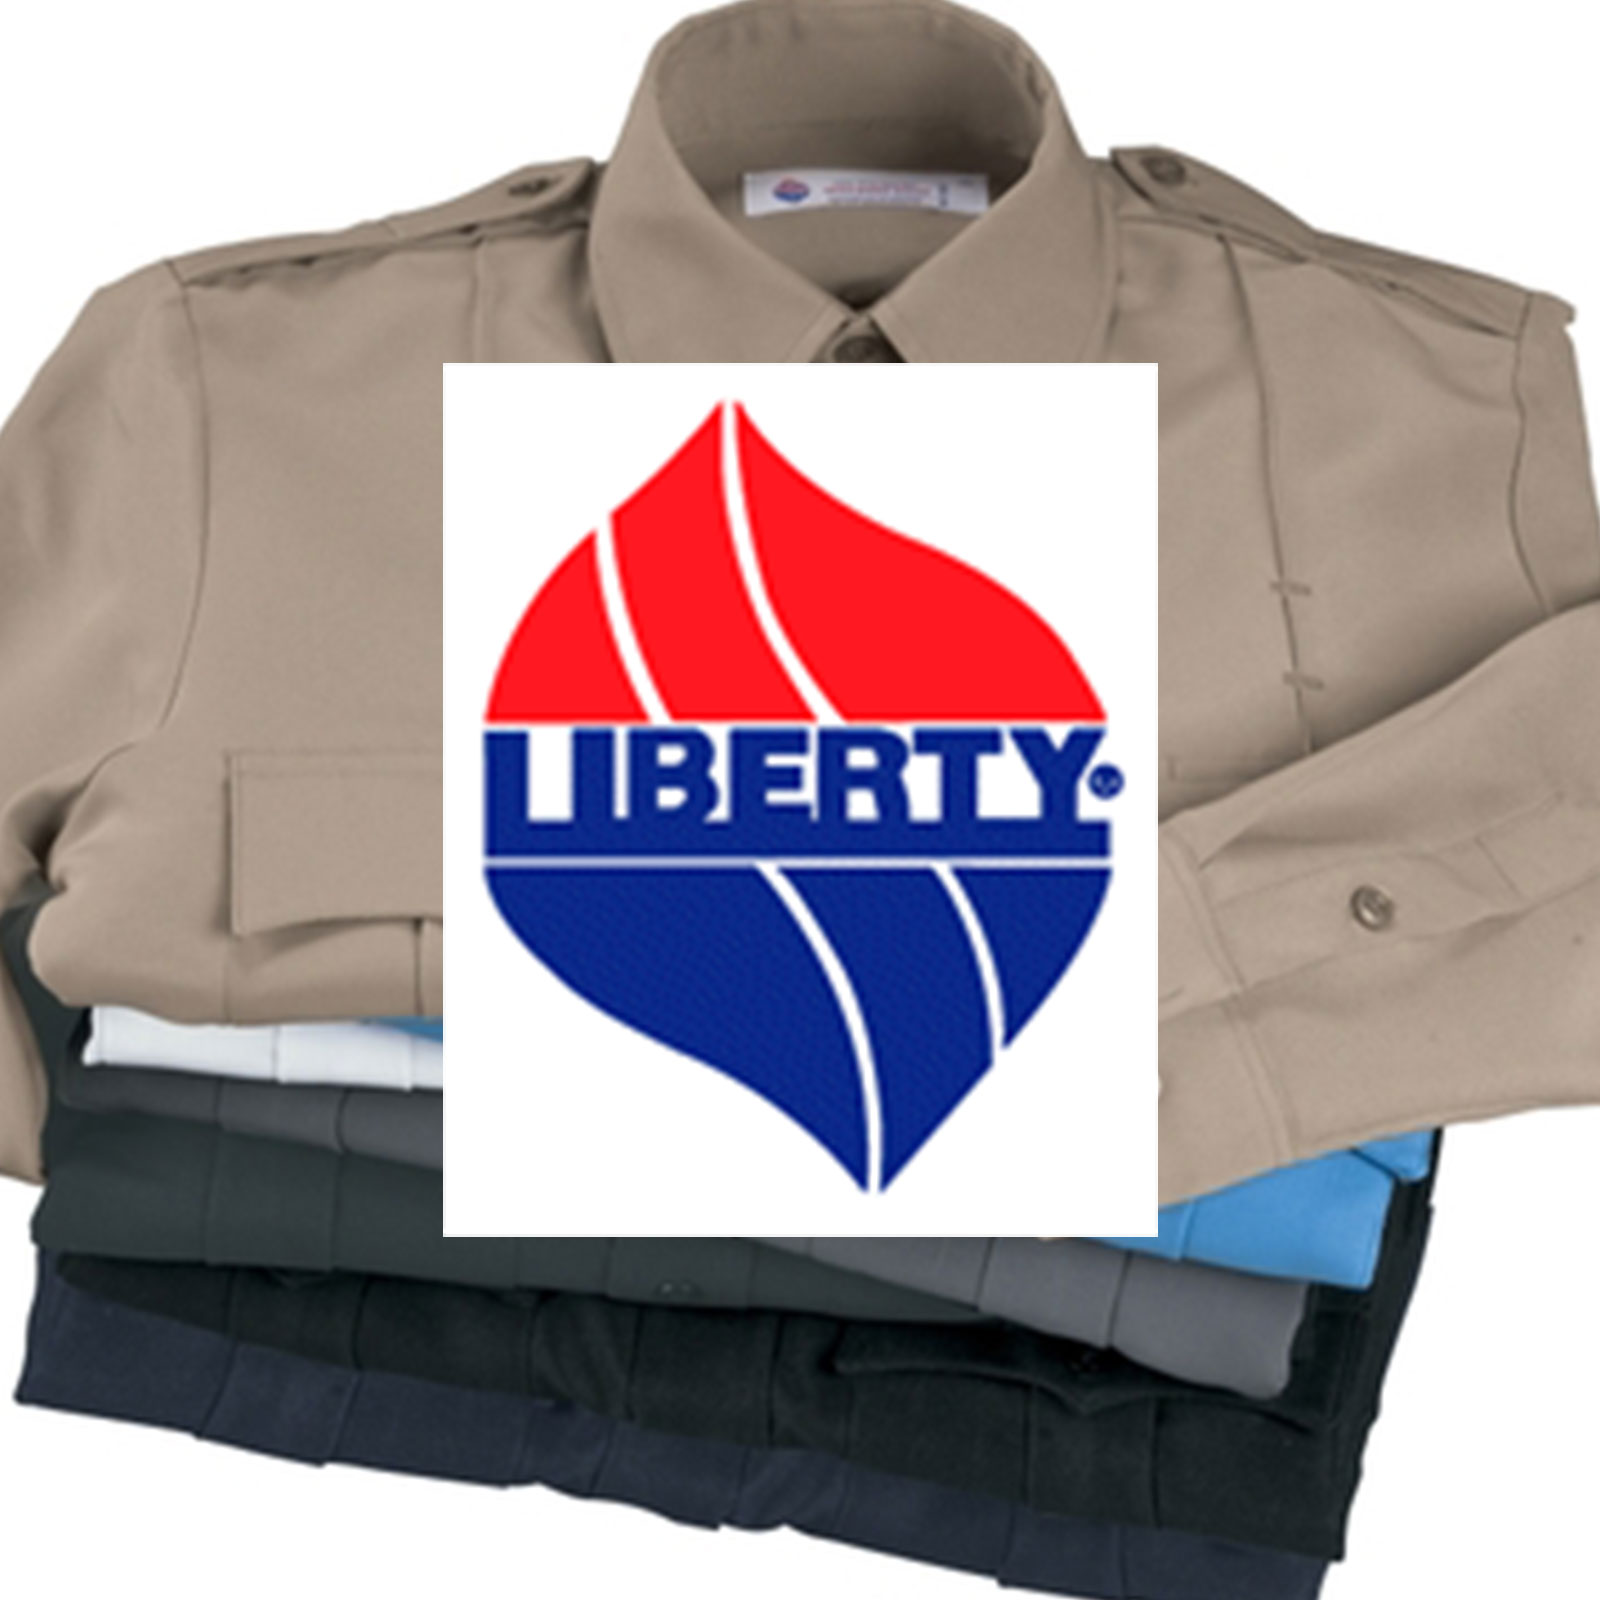 Liberty Uniforms